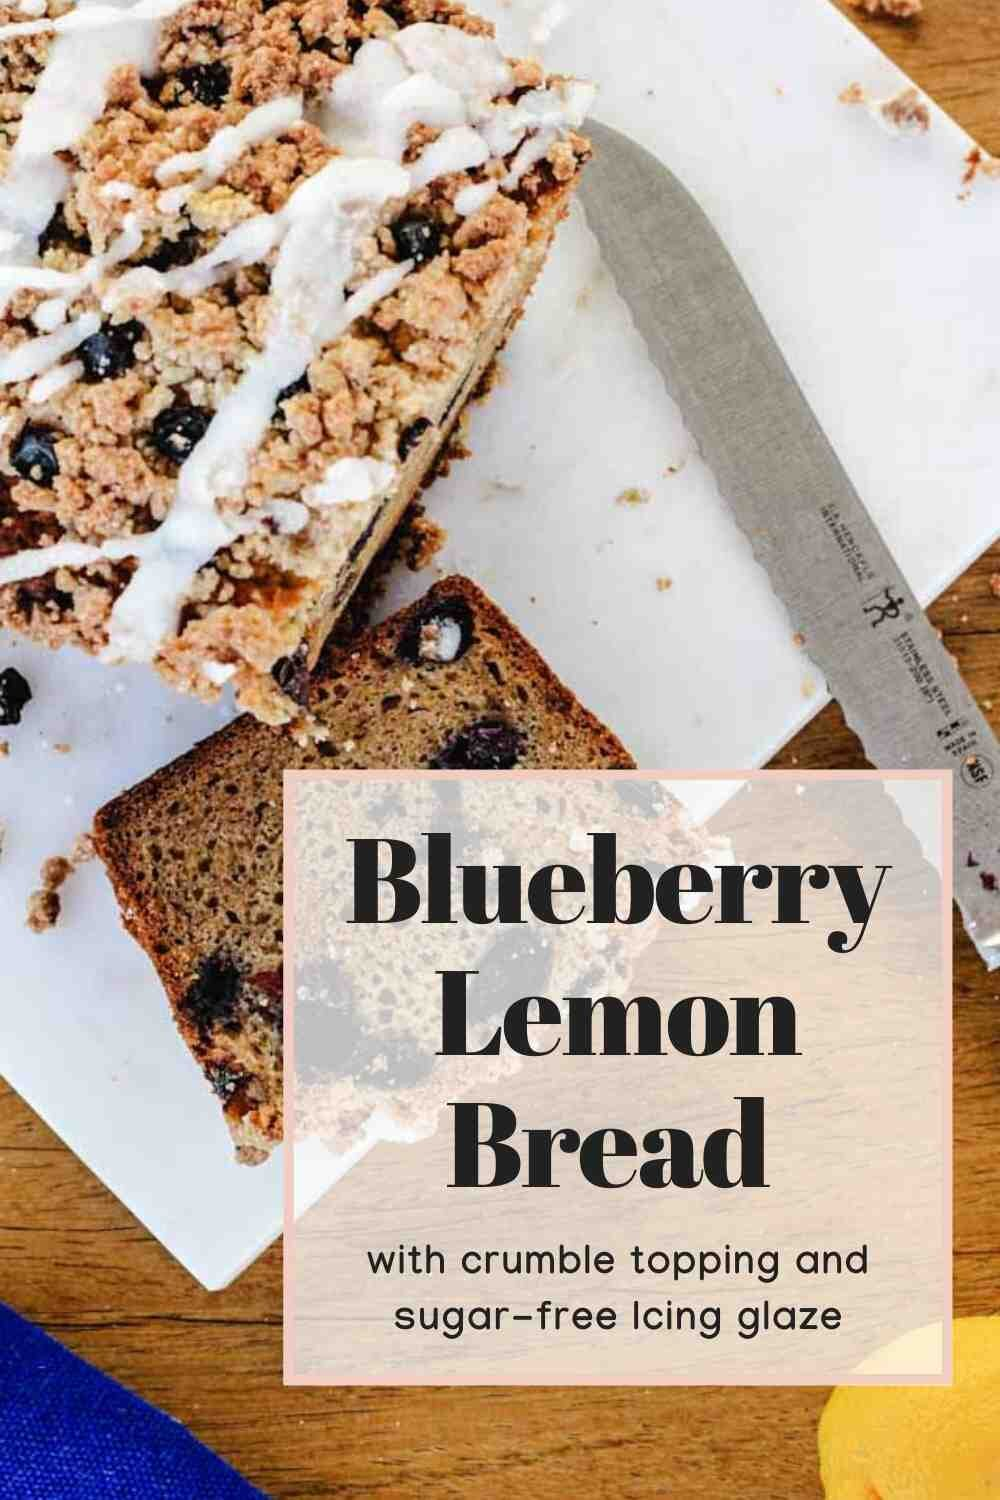 Blueberry lemon bread recipe pinterest graphic with a sliced loaf of streusel-topped loaf cake.